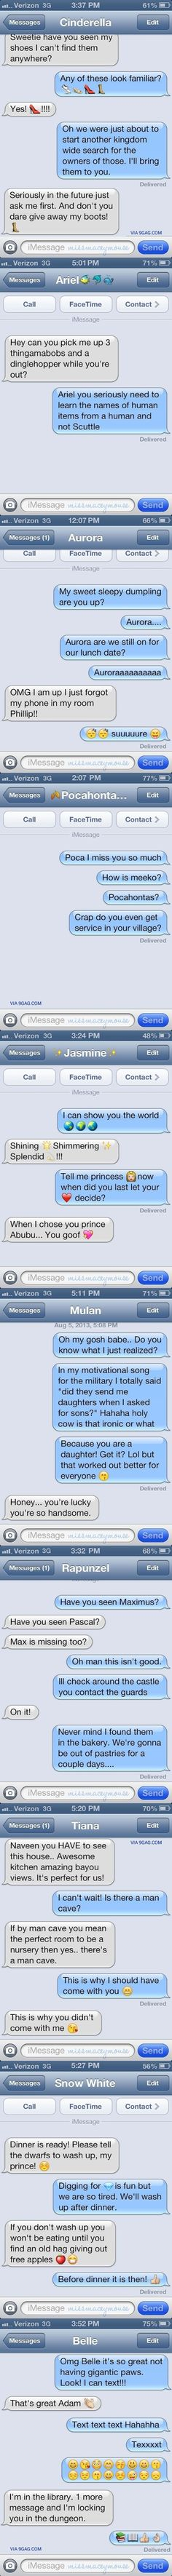 10 Texts From Disney Princesses To Their Princes